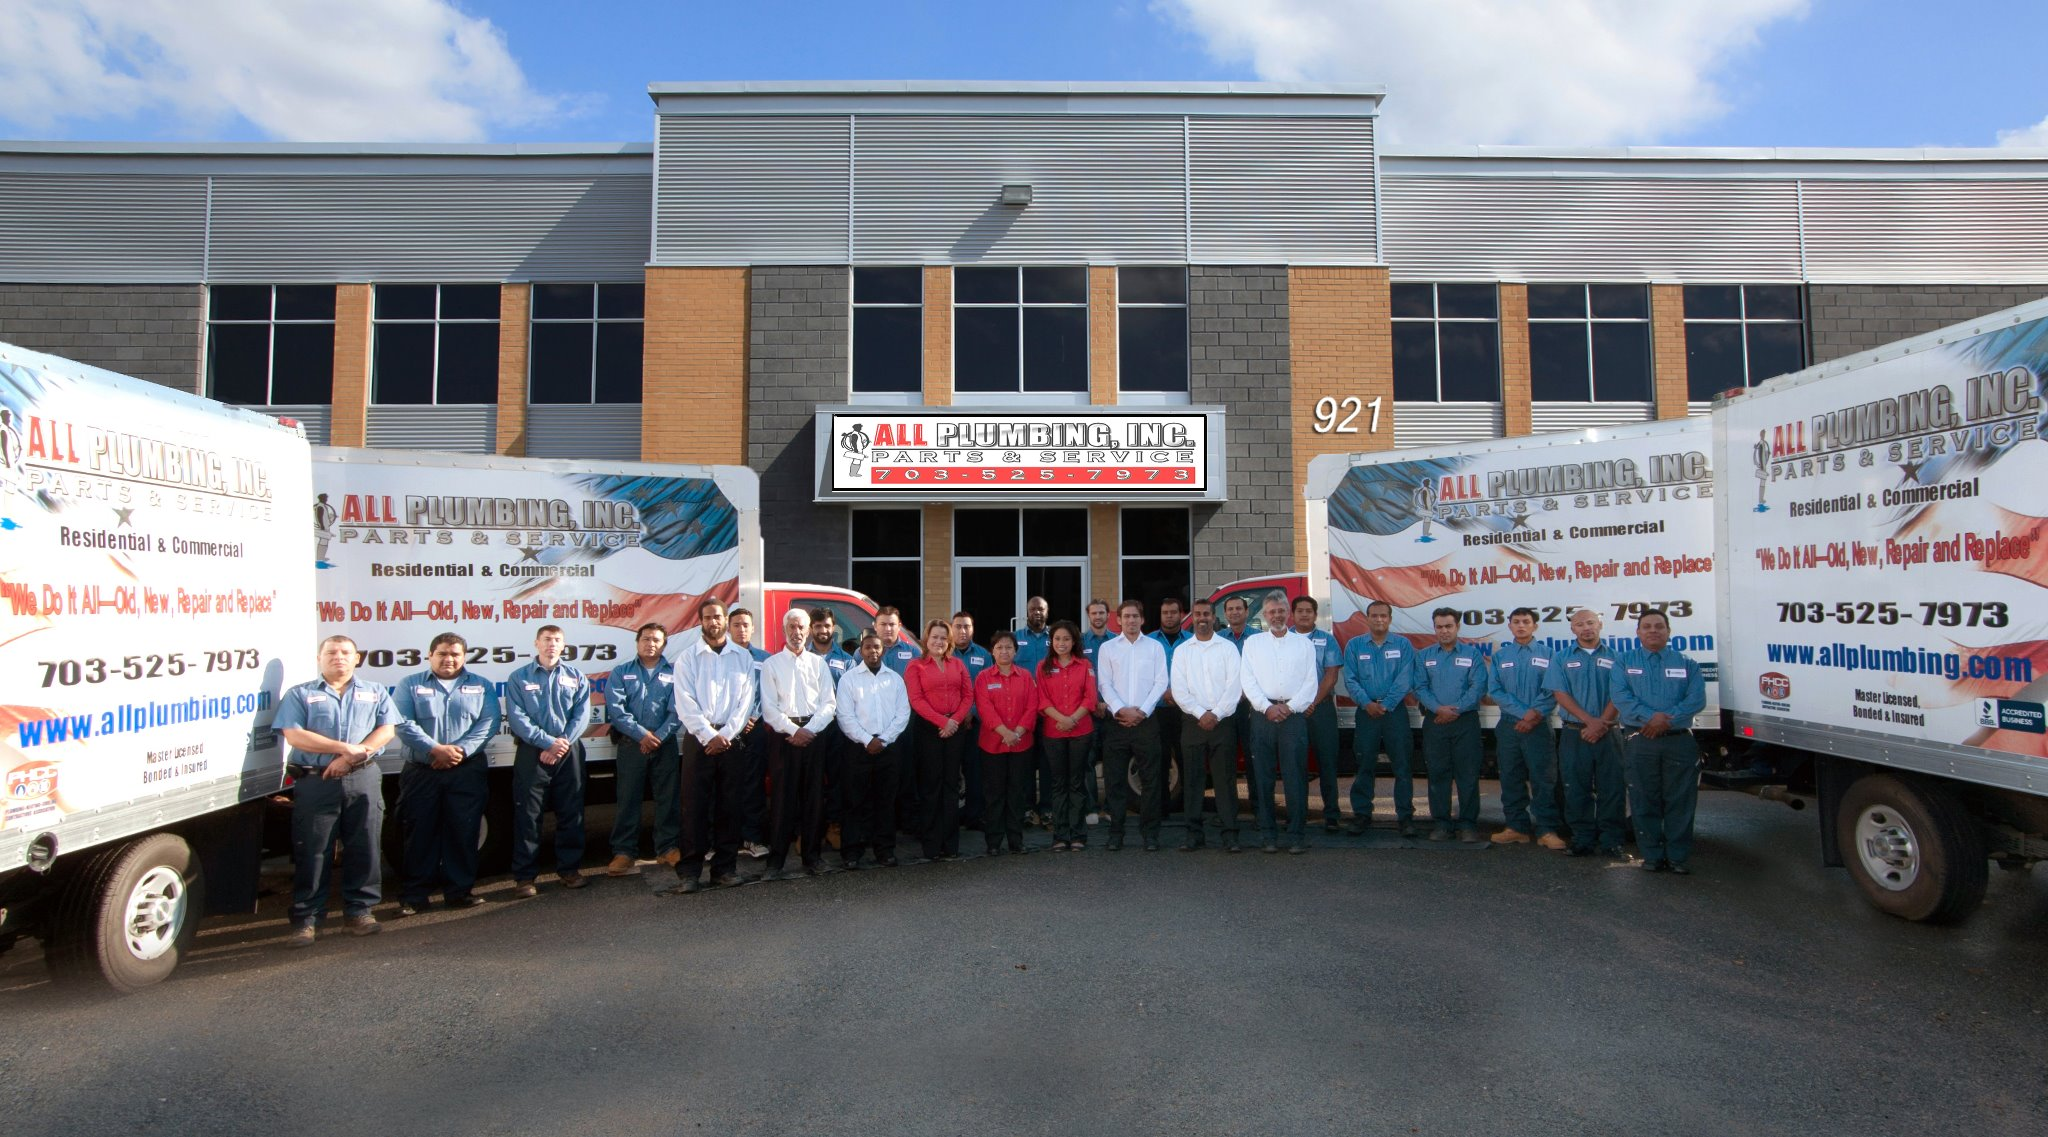 Accountability Over Decades Wins All Plumbing, Inc. Customer Service Award Year-Over-Year